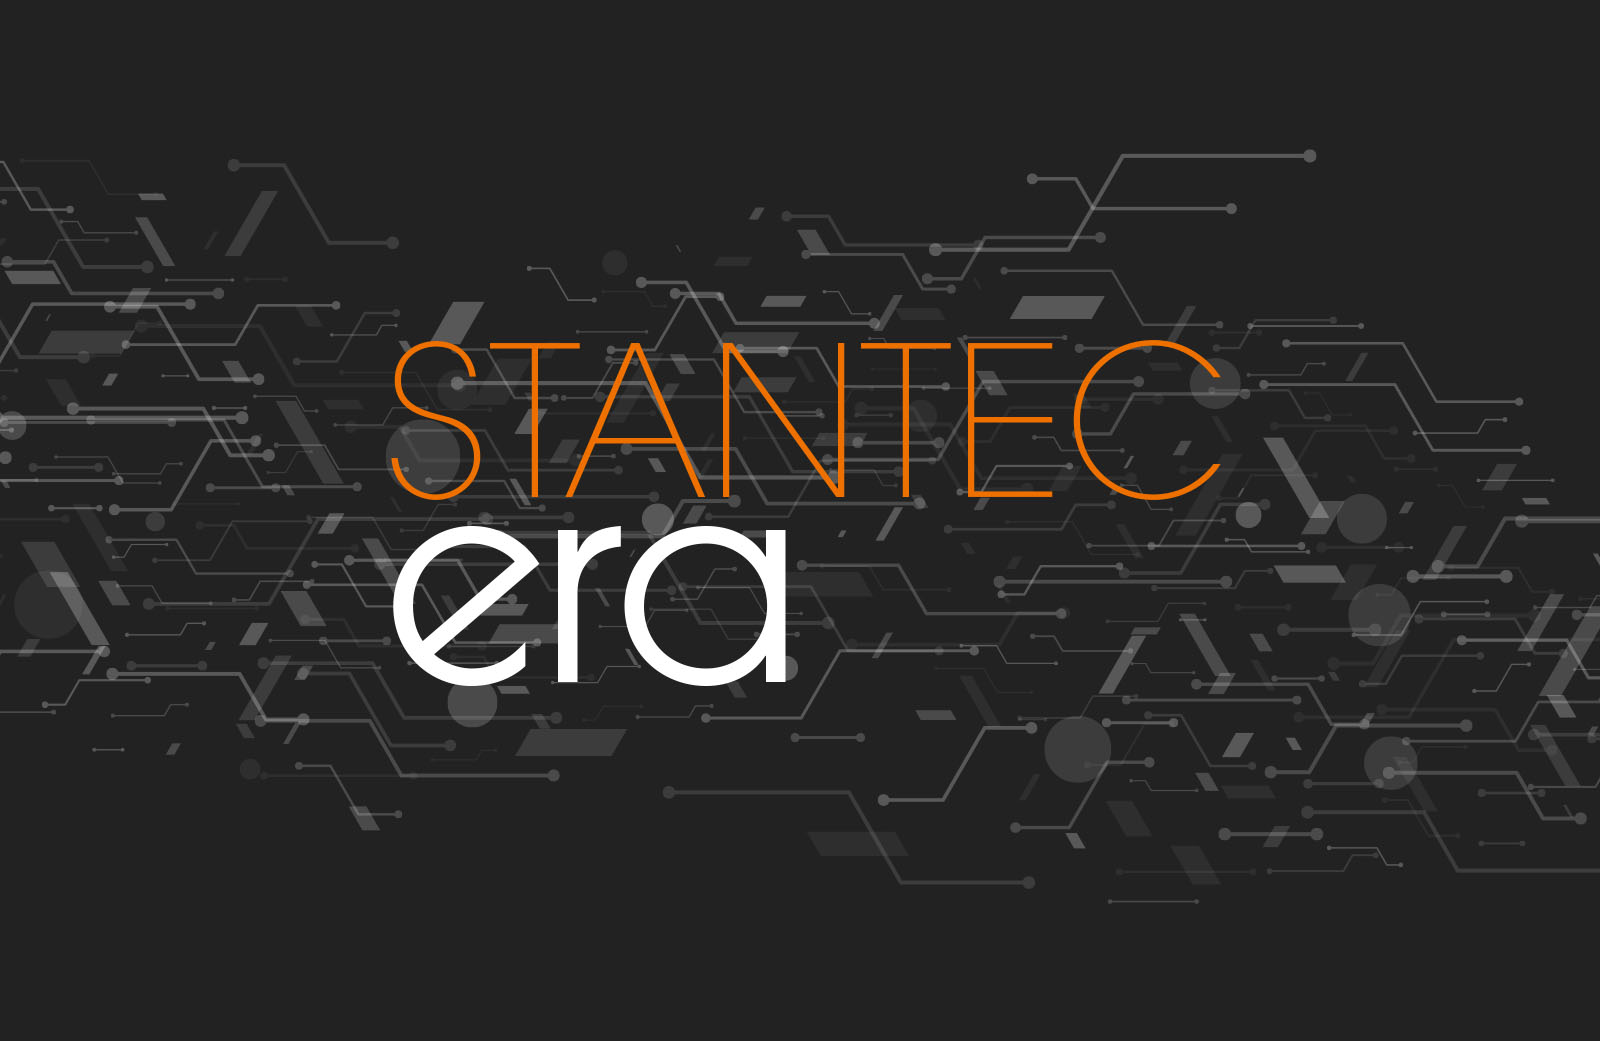 Stantec ERA Issue 02 | The Digital Issue